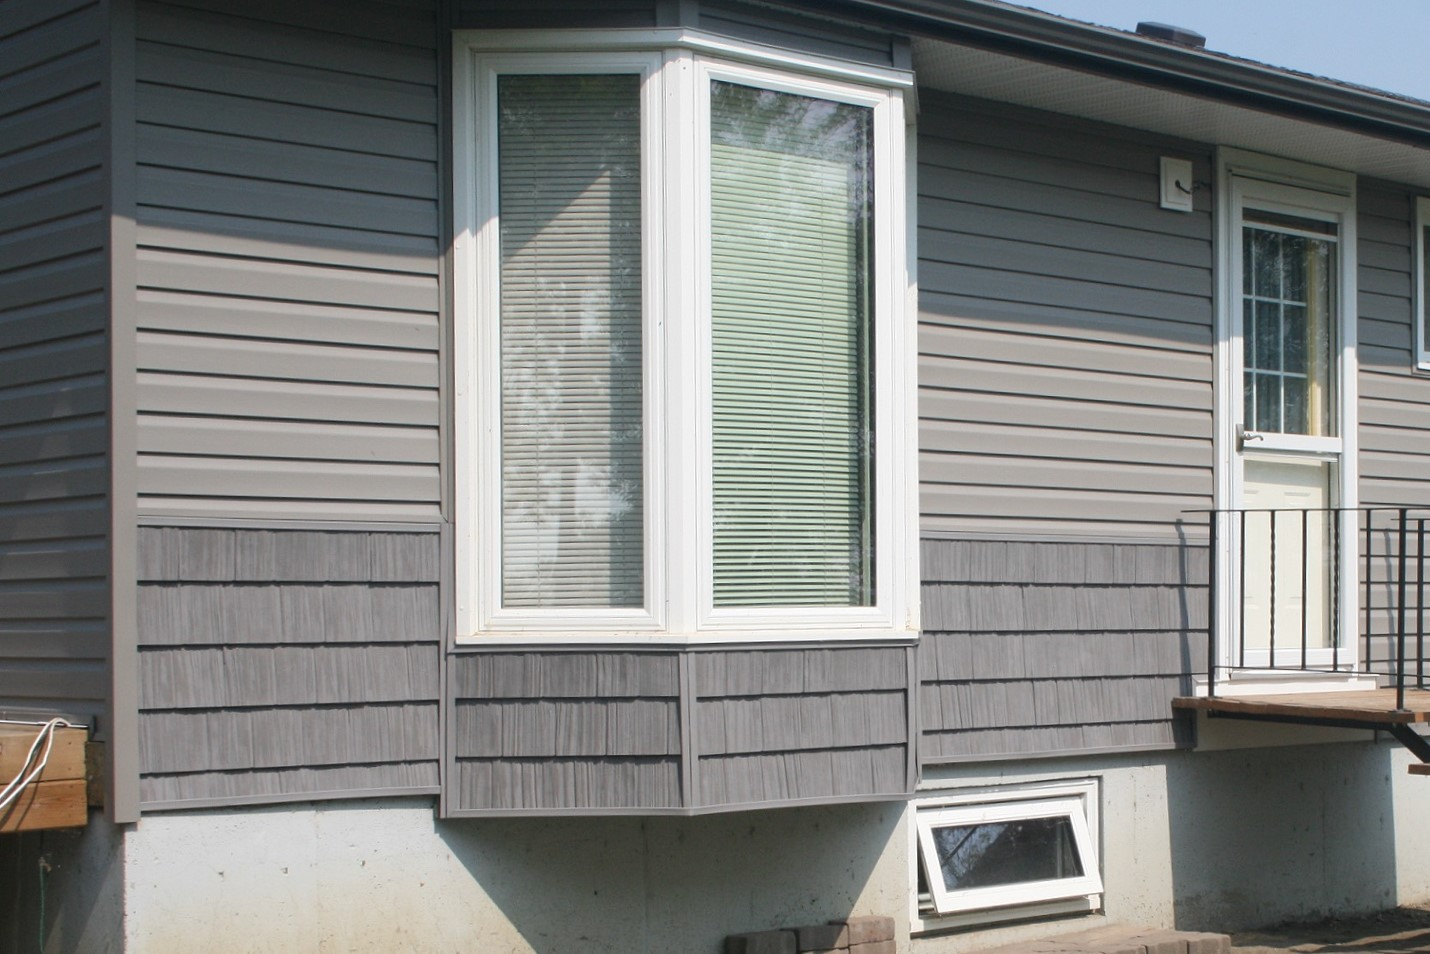 Exterior renovation on a house with hail damage. - Image 8